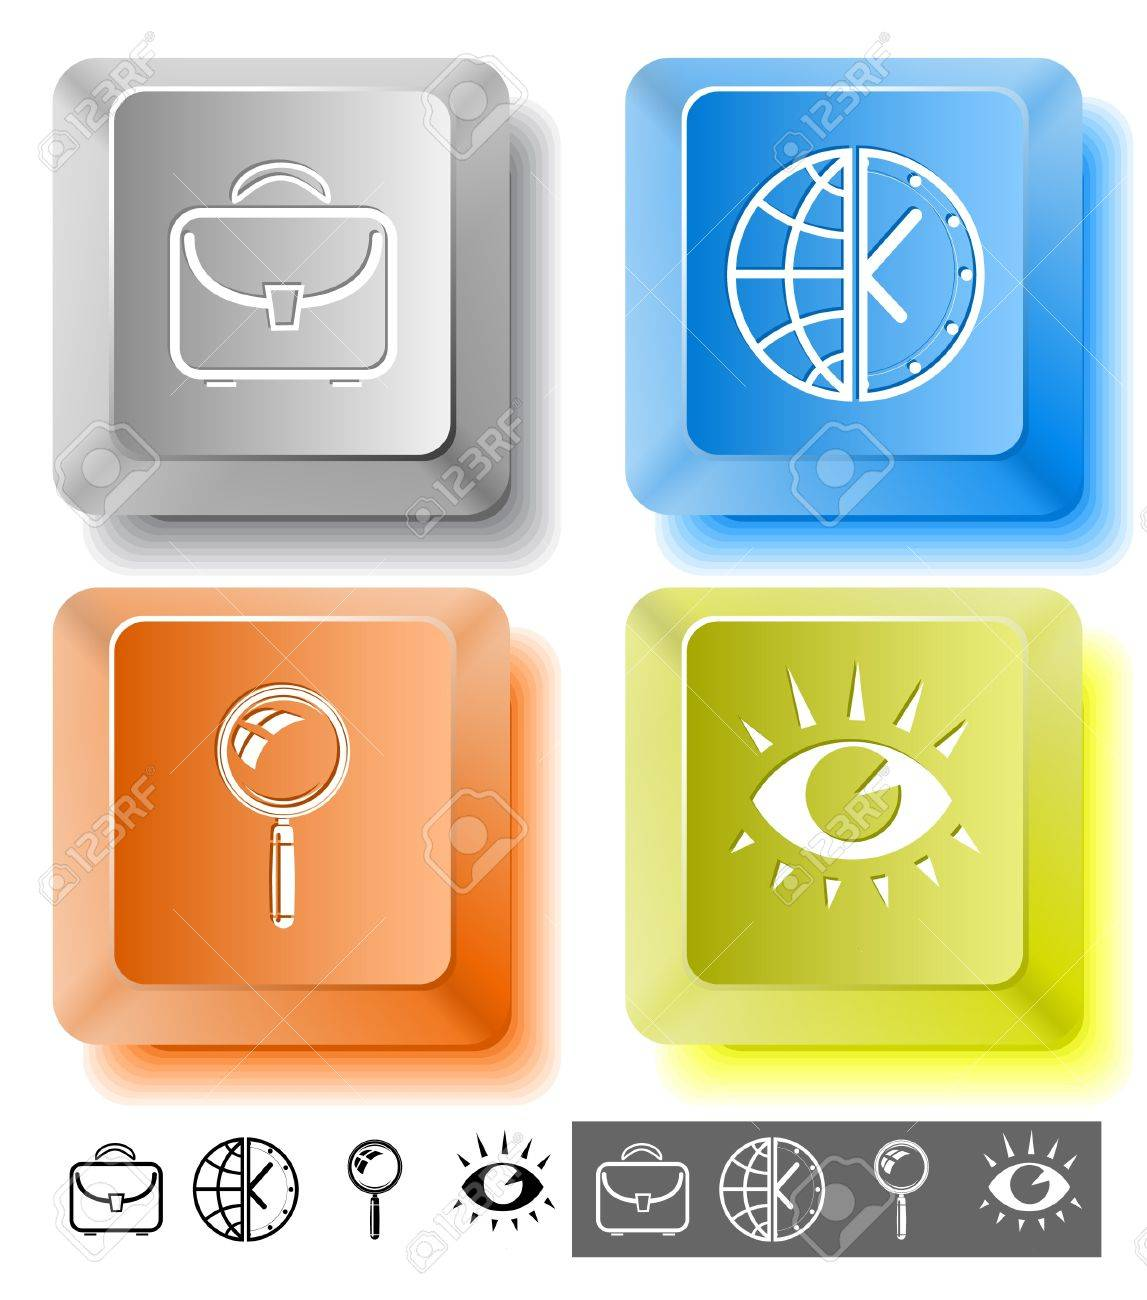 Business icon set. Magnifying glass, globe and clock, briefcase, eye. Computer keys. Vector illustration. Stock Illustration - 12920209